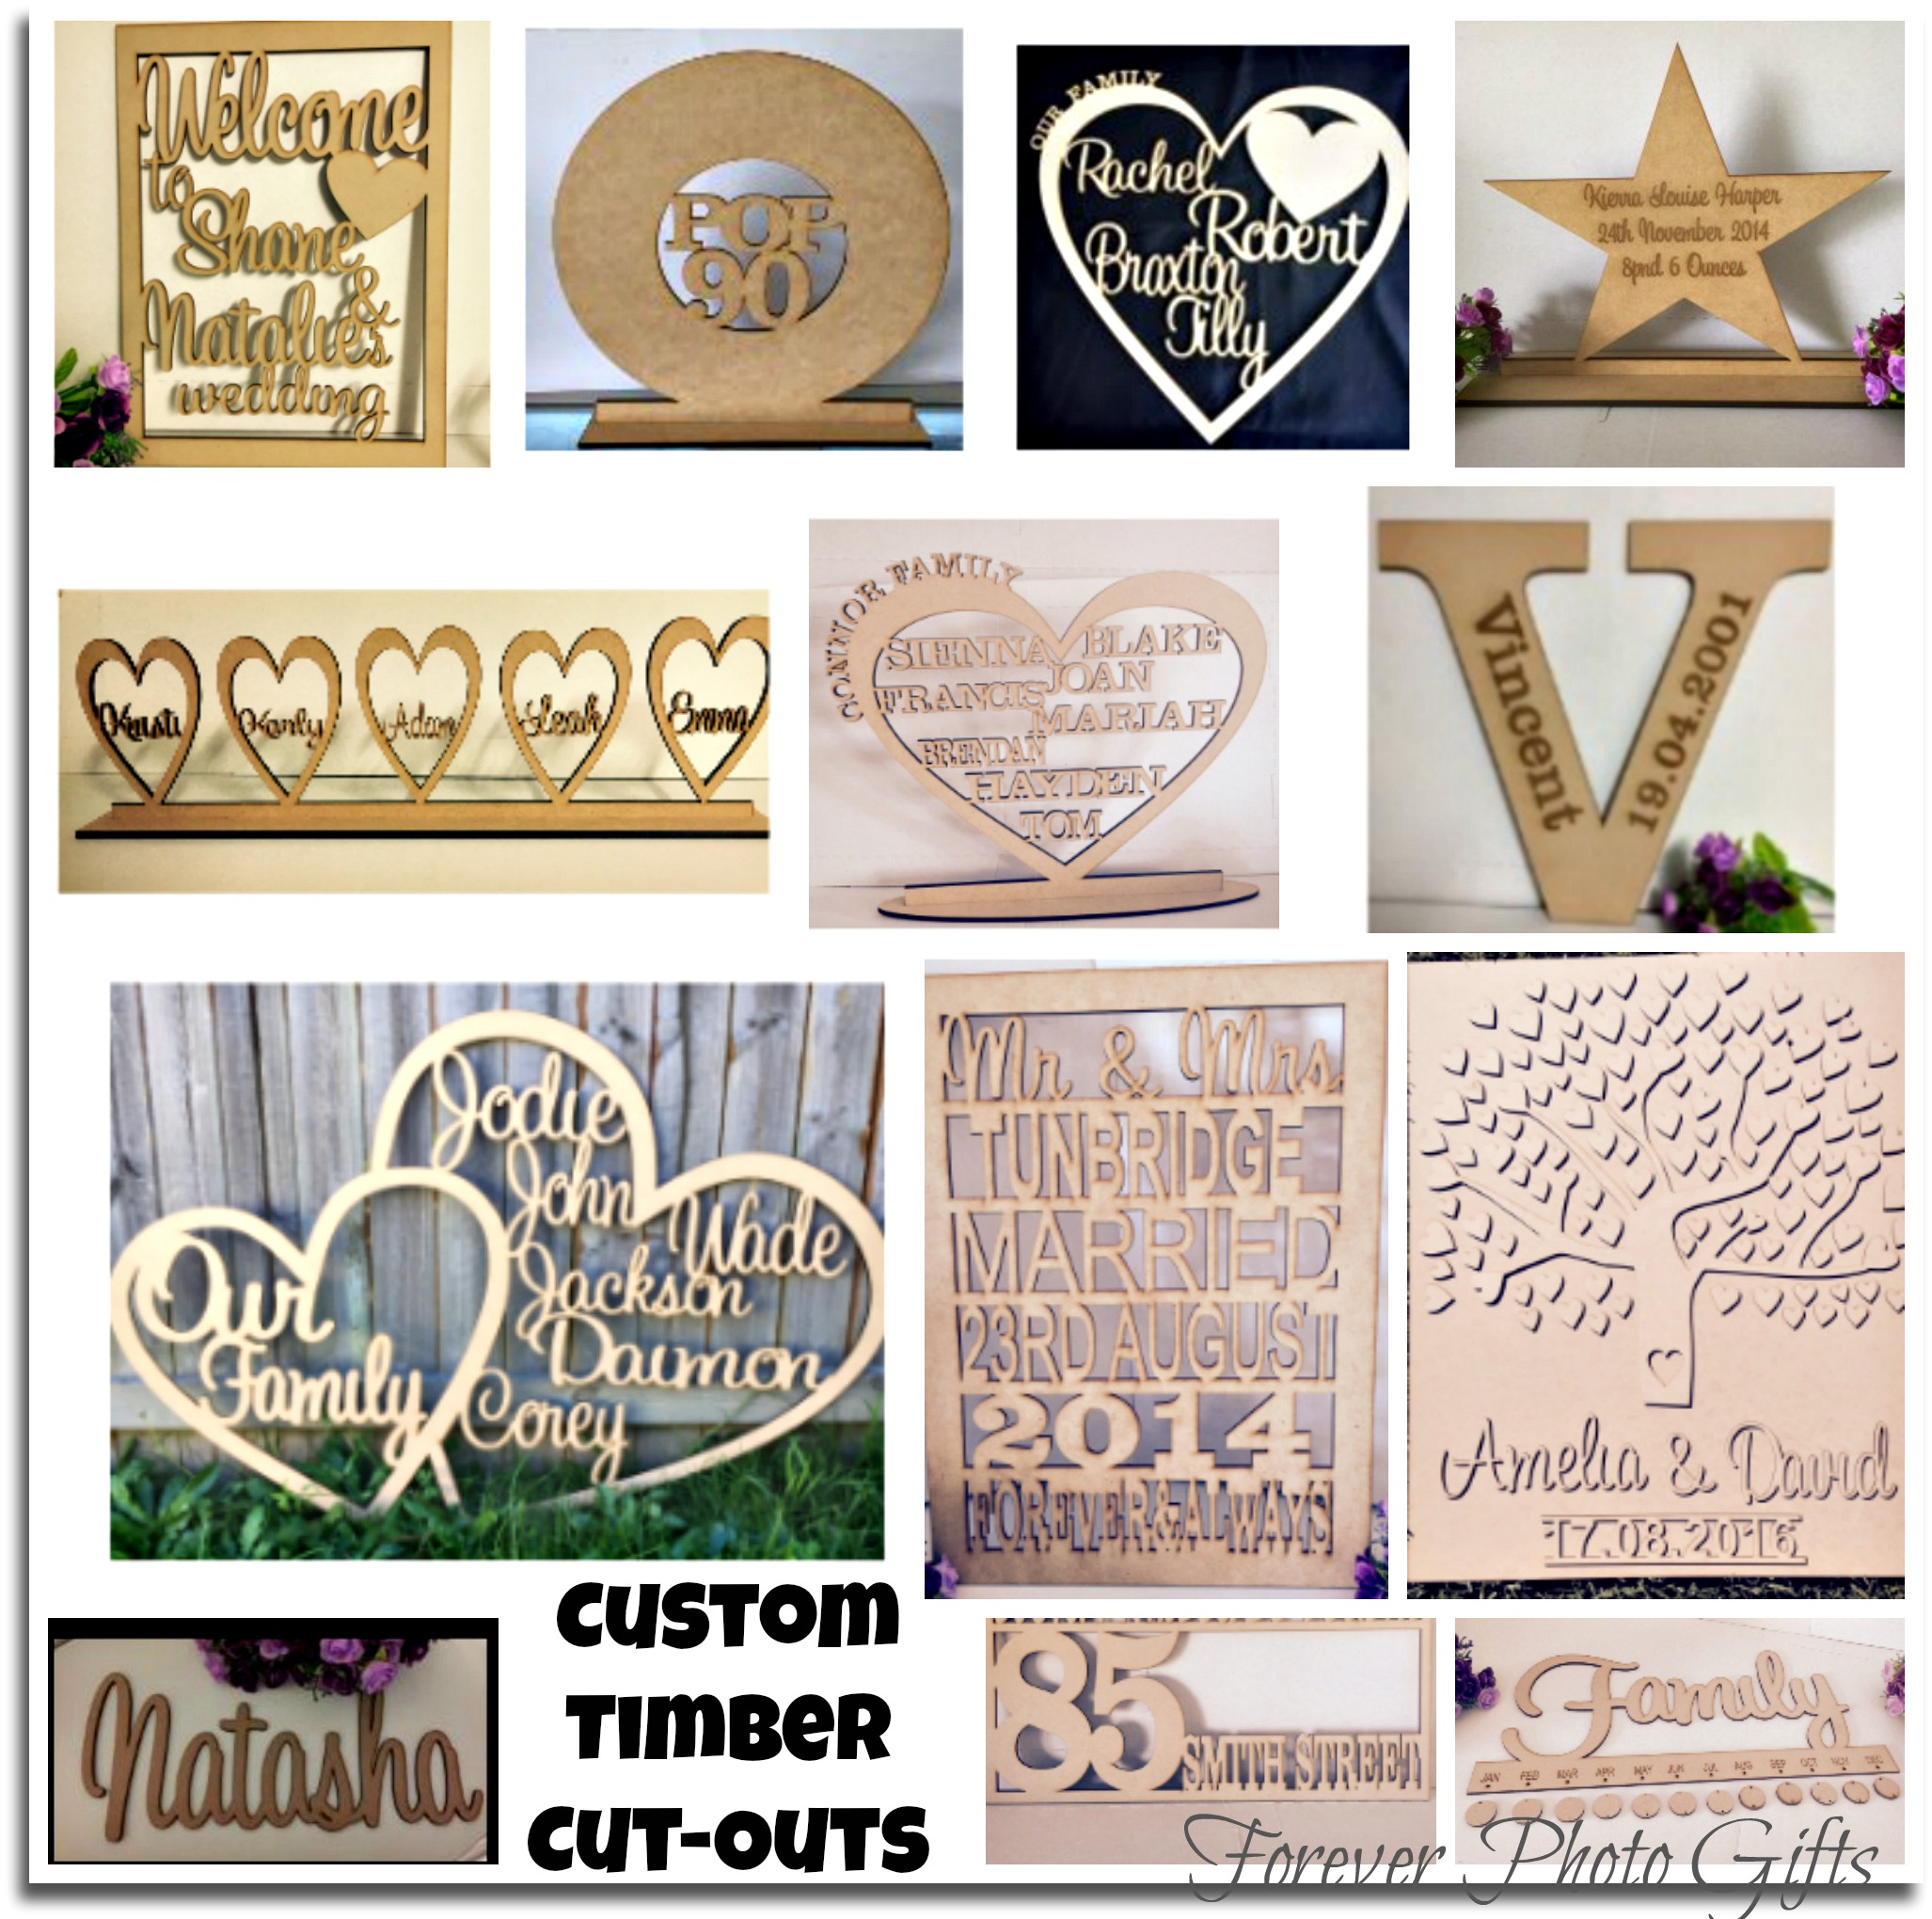 Timber Cut-Outs